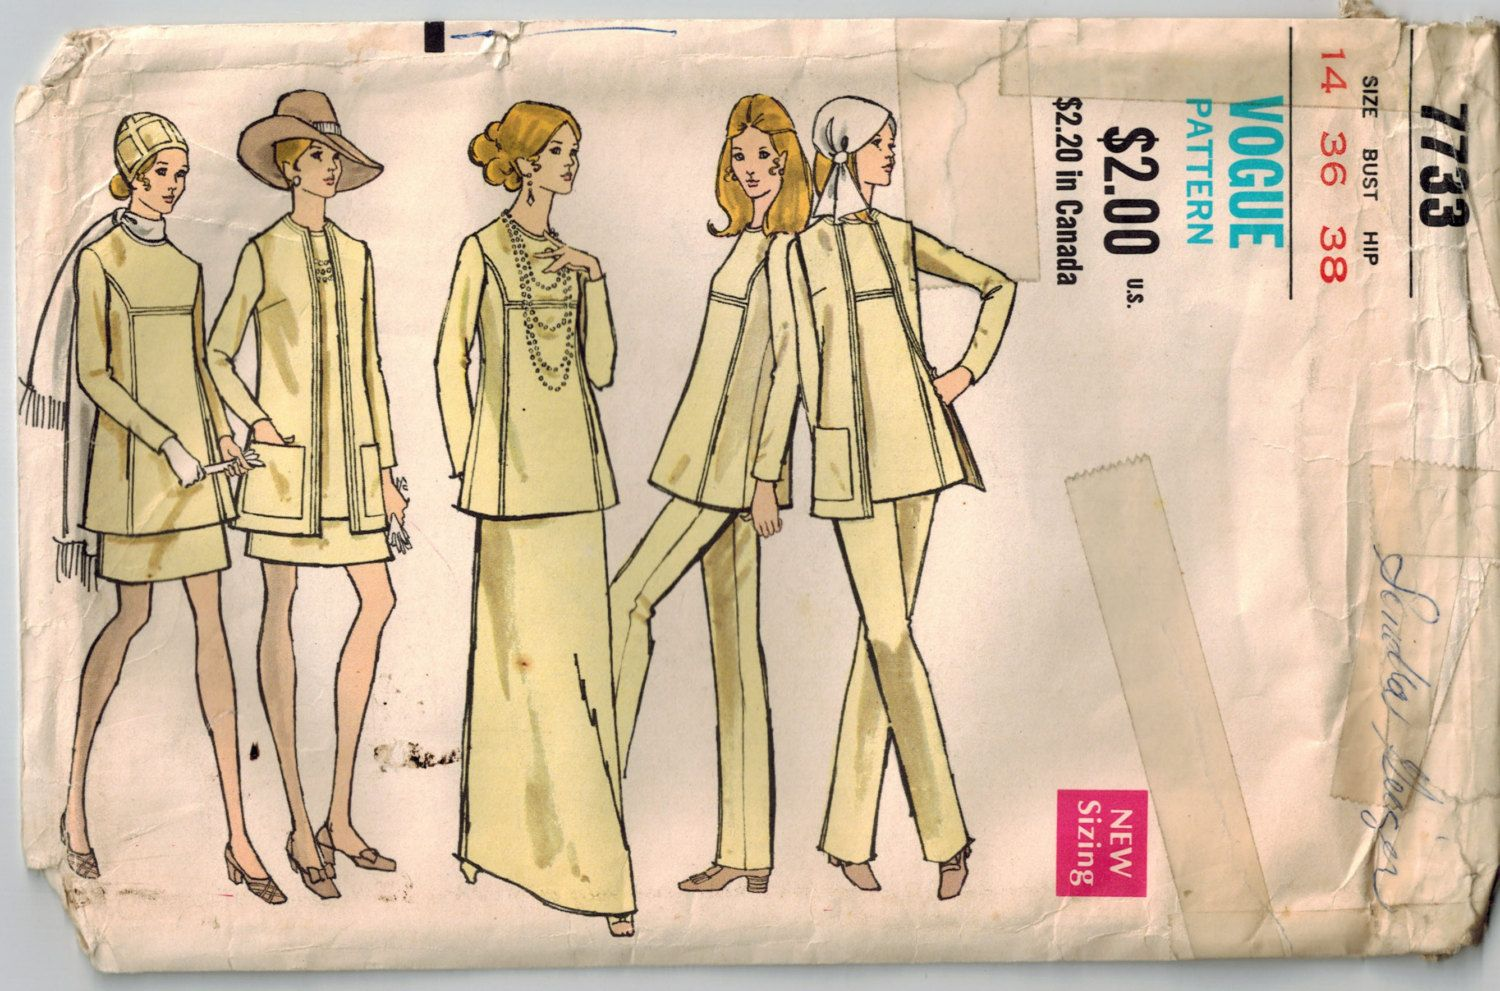 Vintage 70s Tunic Jacket Skirt and Pants Vogue Sewing Pattern Bust ...